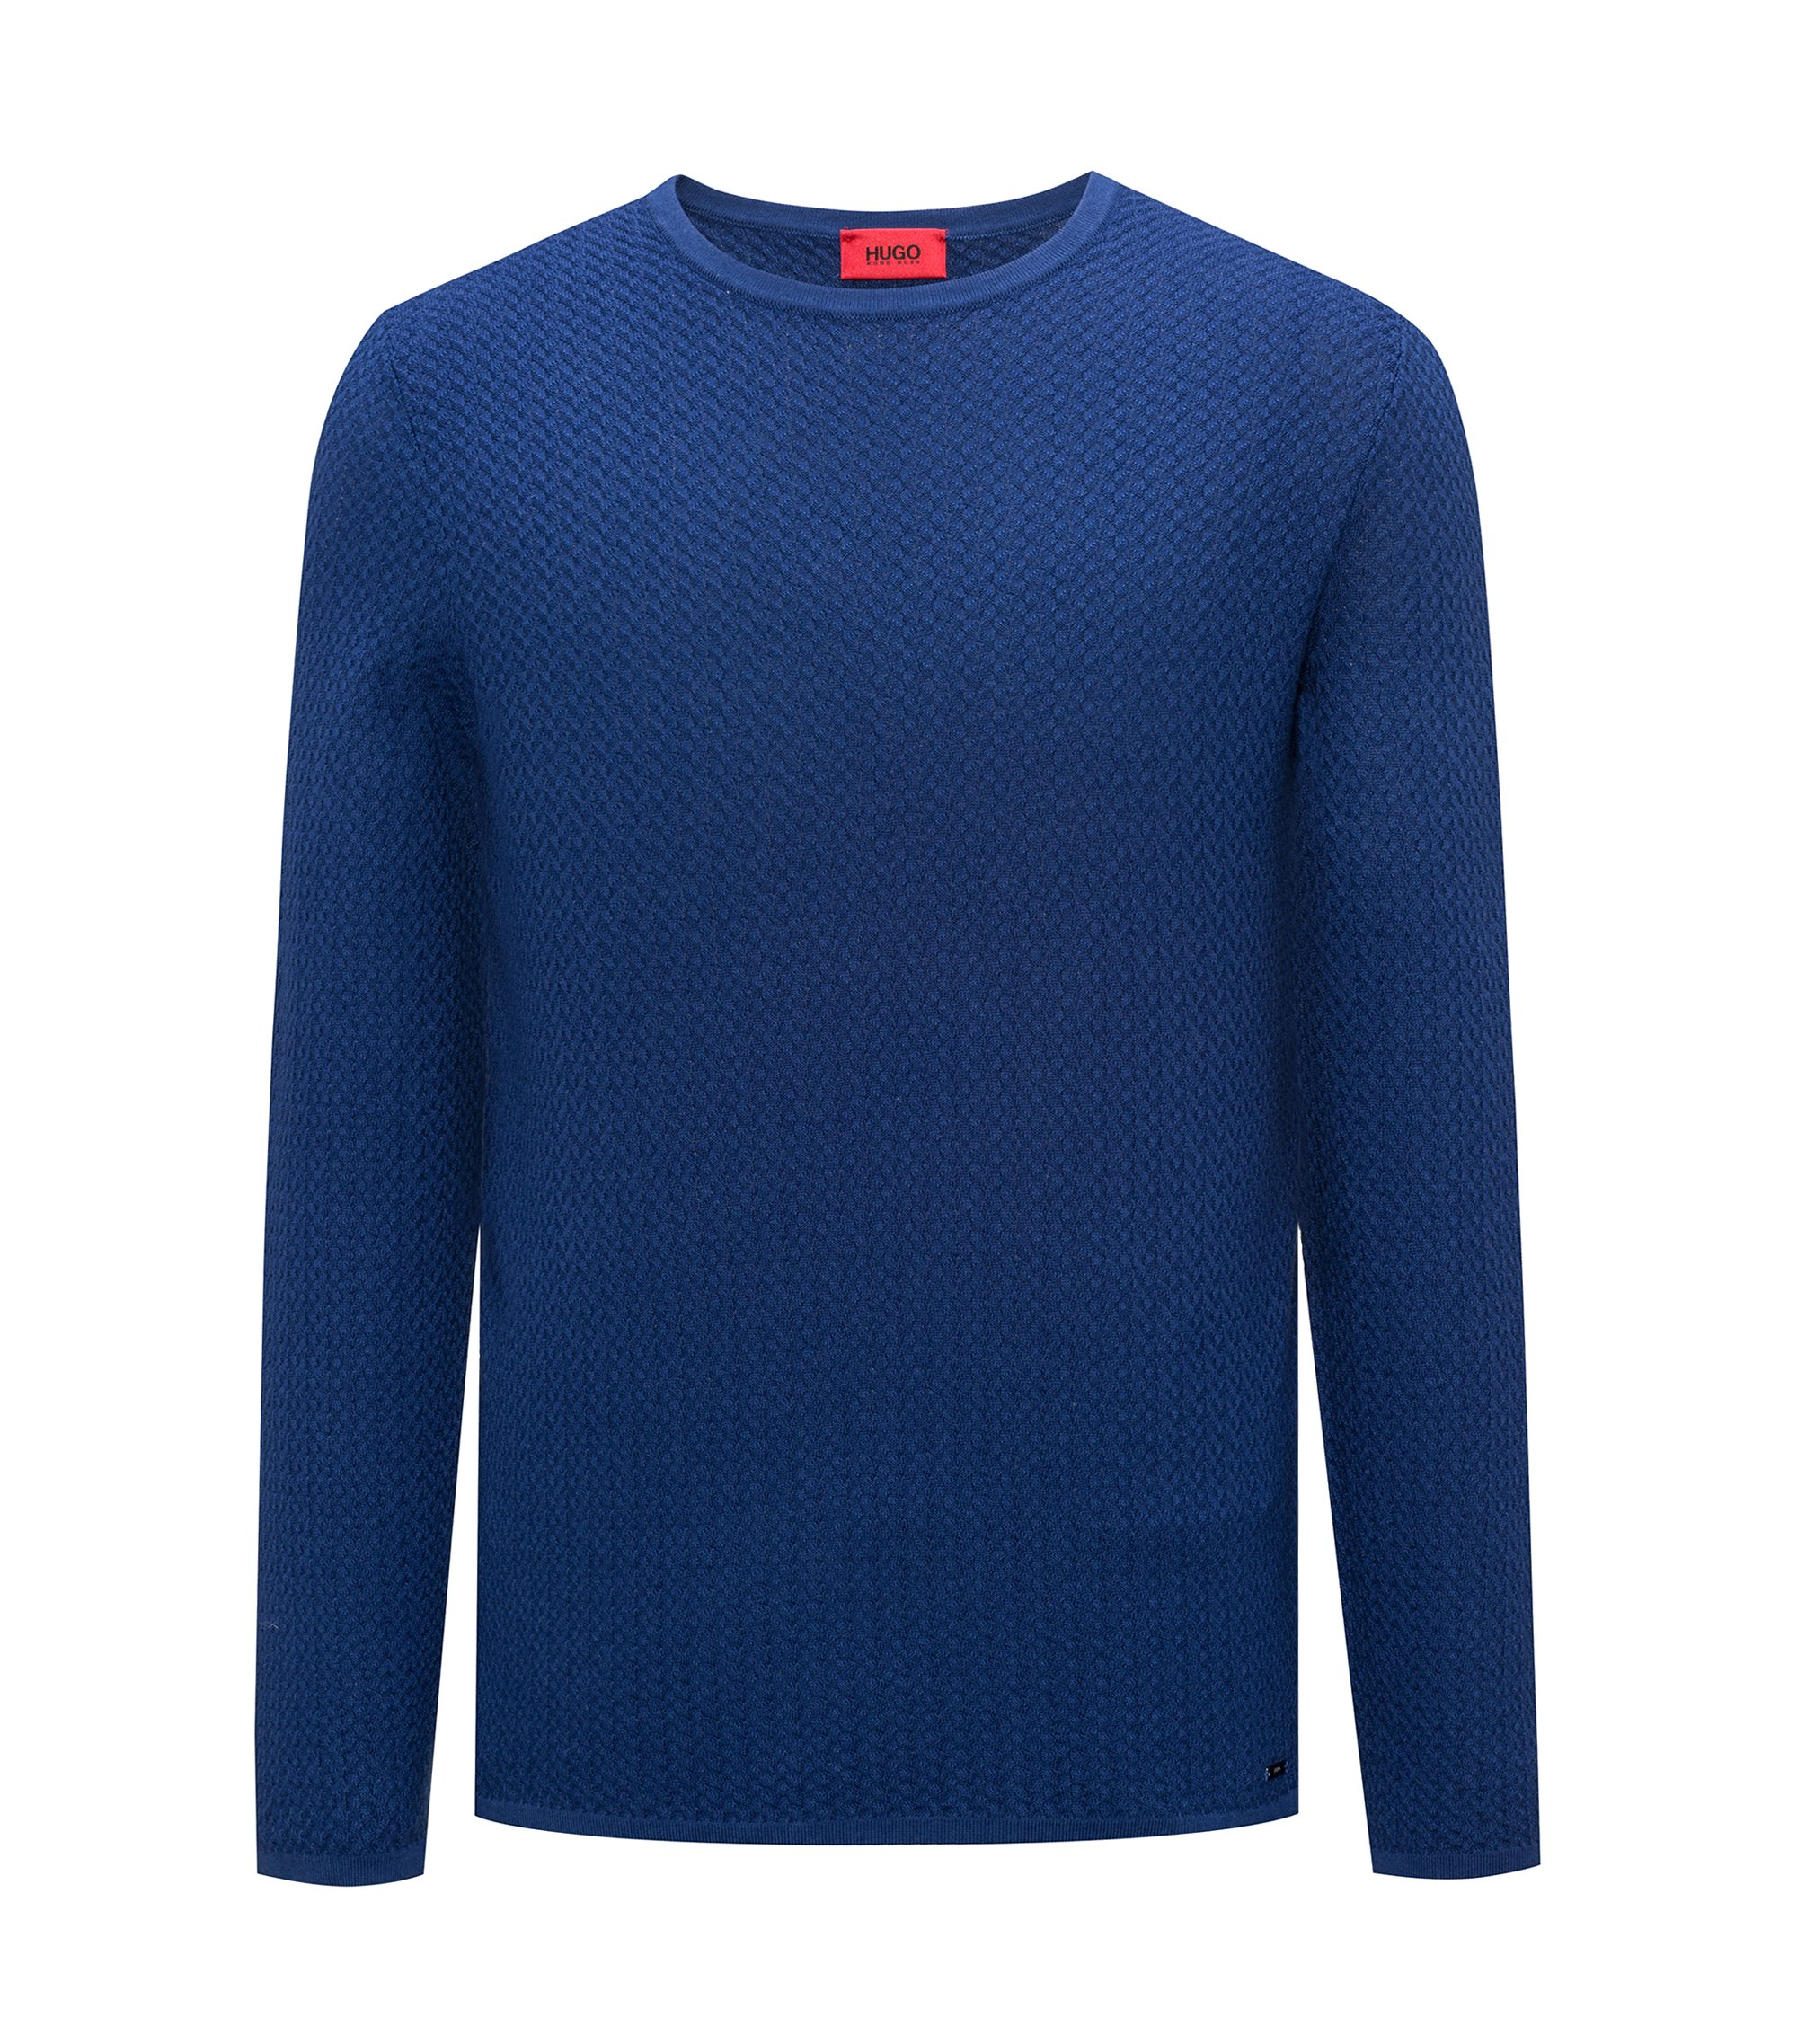 Slim-fit sweater in herringbone cotton jacquard, Dark Blue